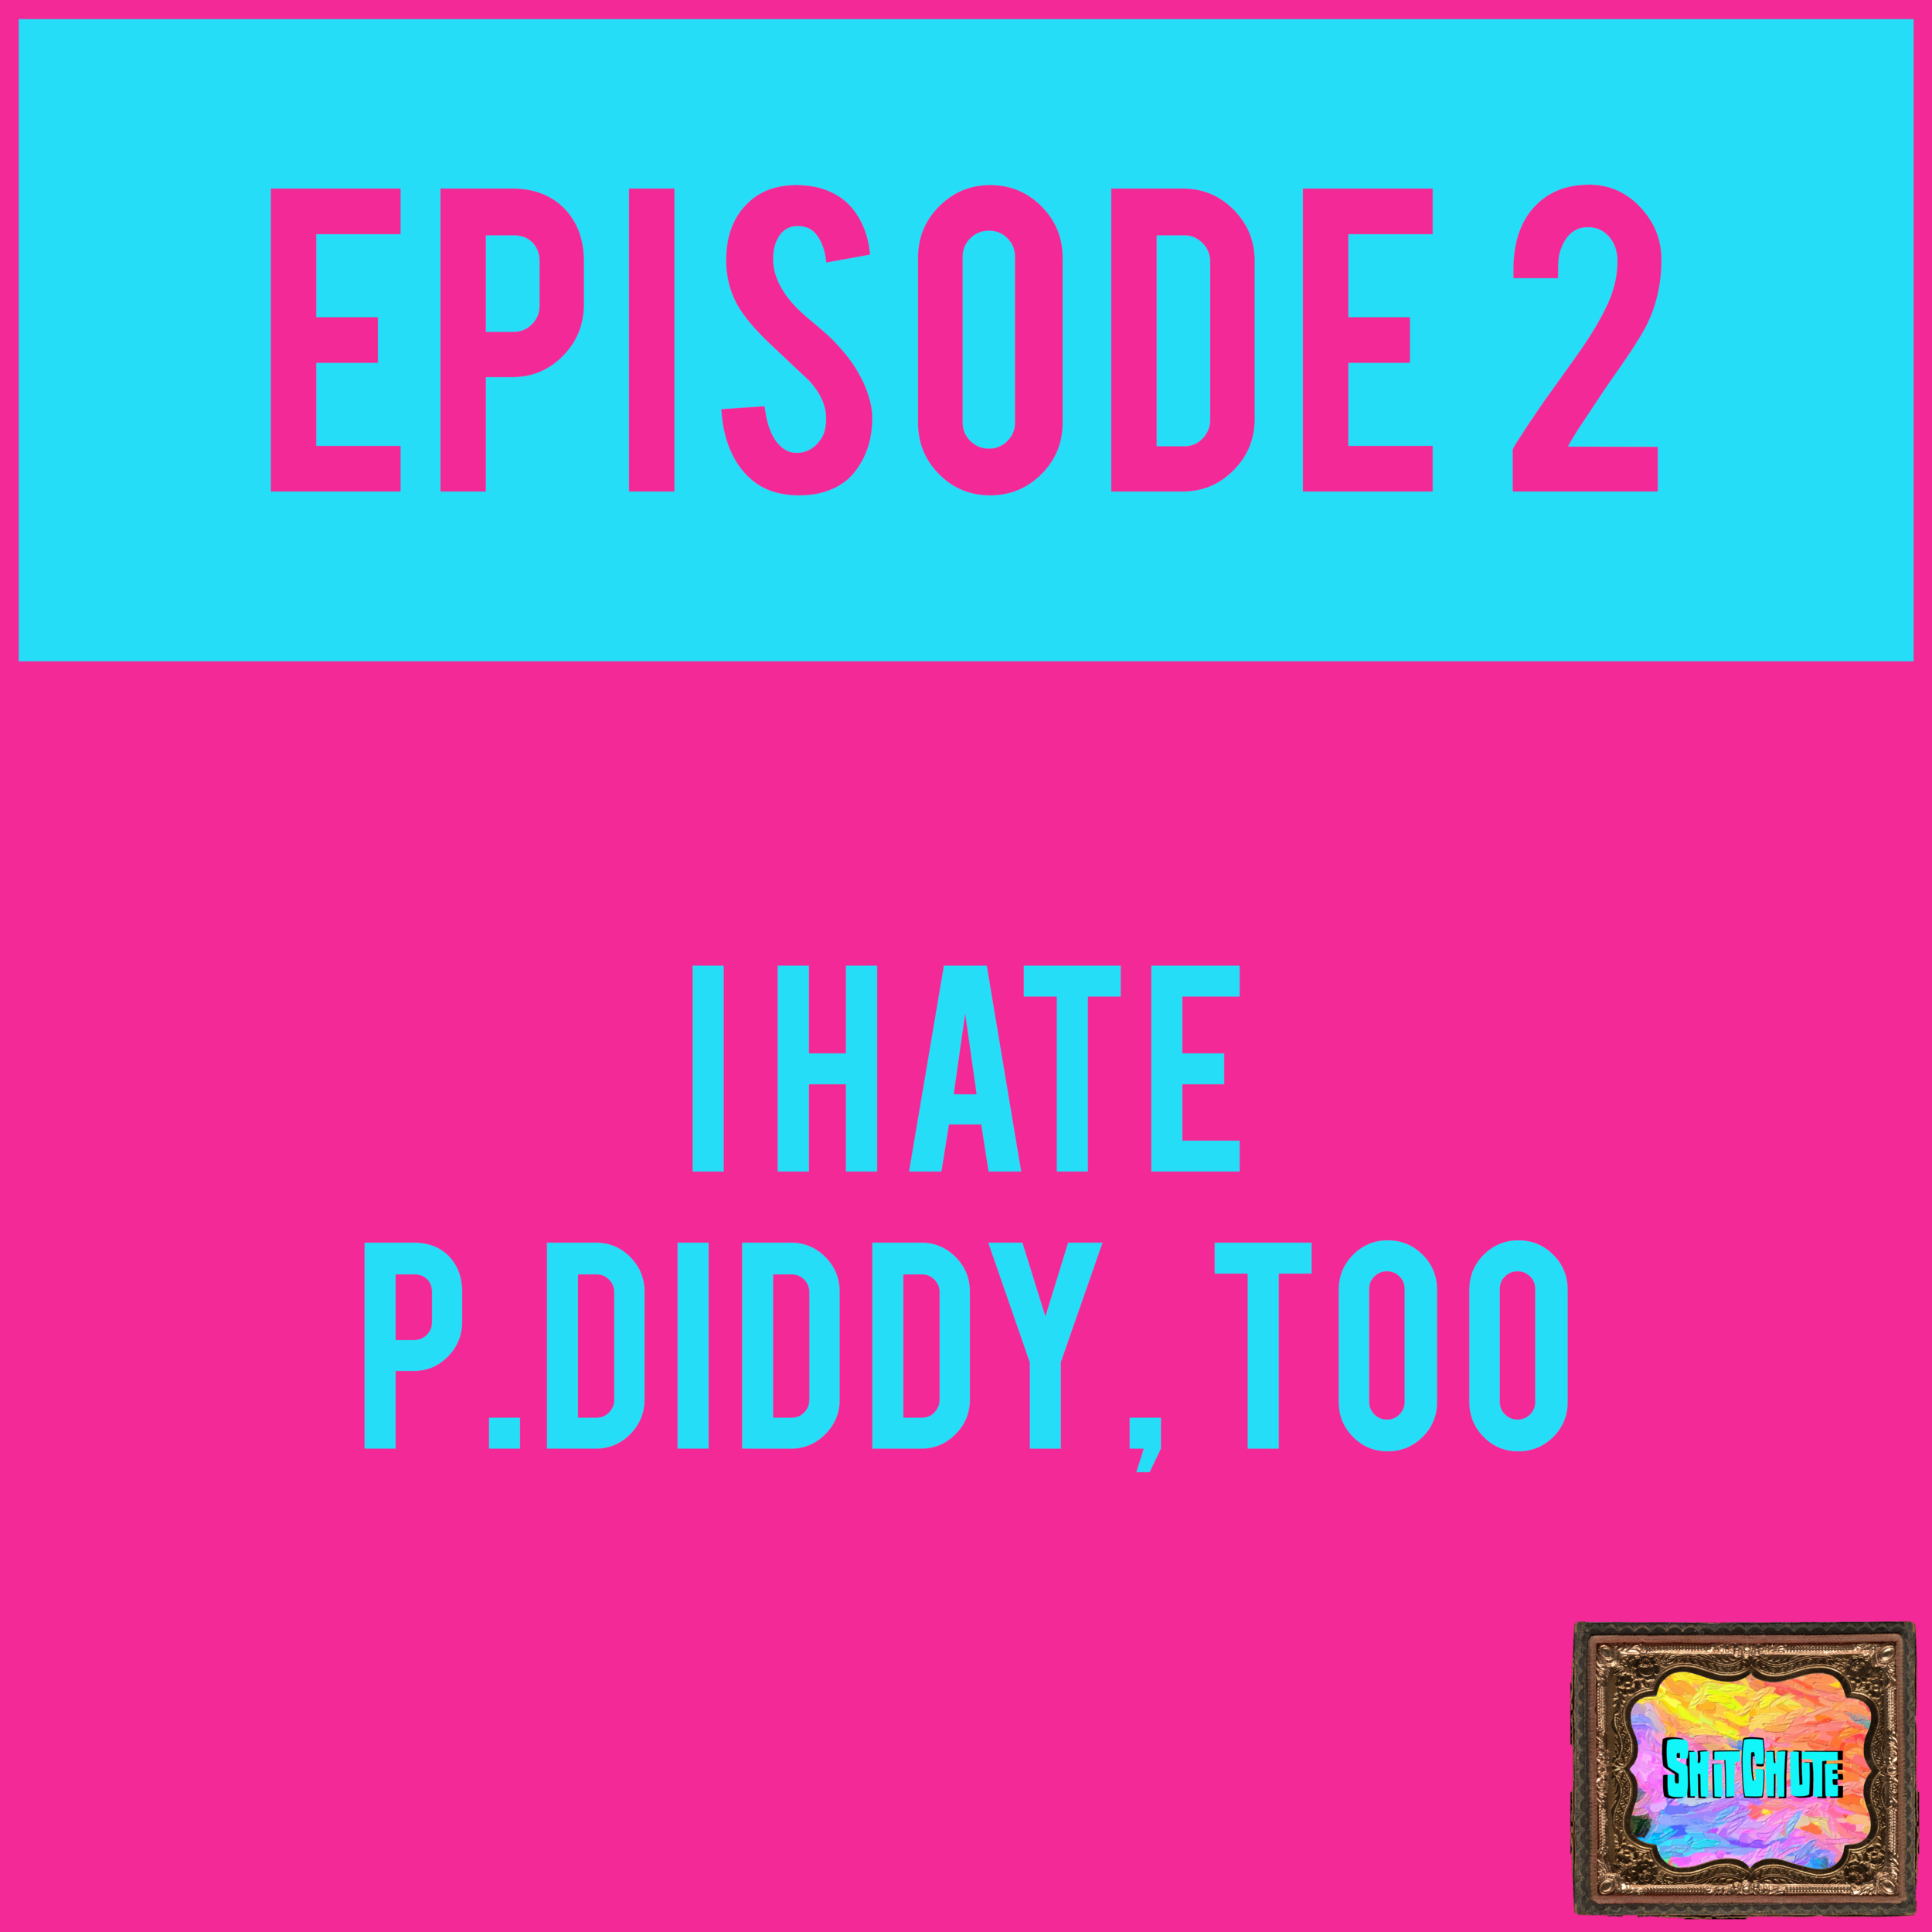 EPISODE 2 - This bad boy is live for all you $5 and up Patrons! If you wanna see what all the hype is about, check us out on Patreon!